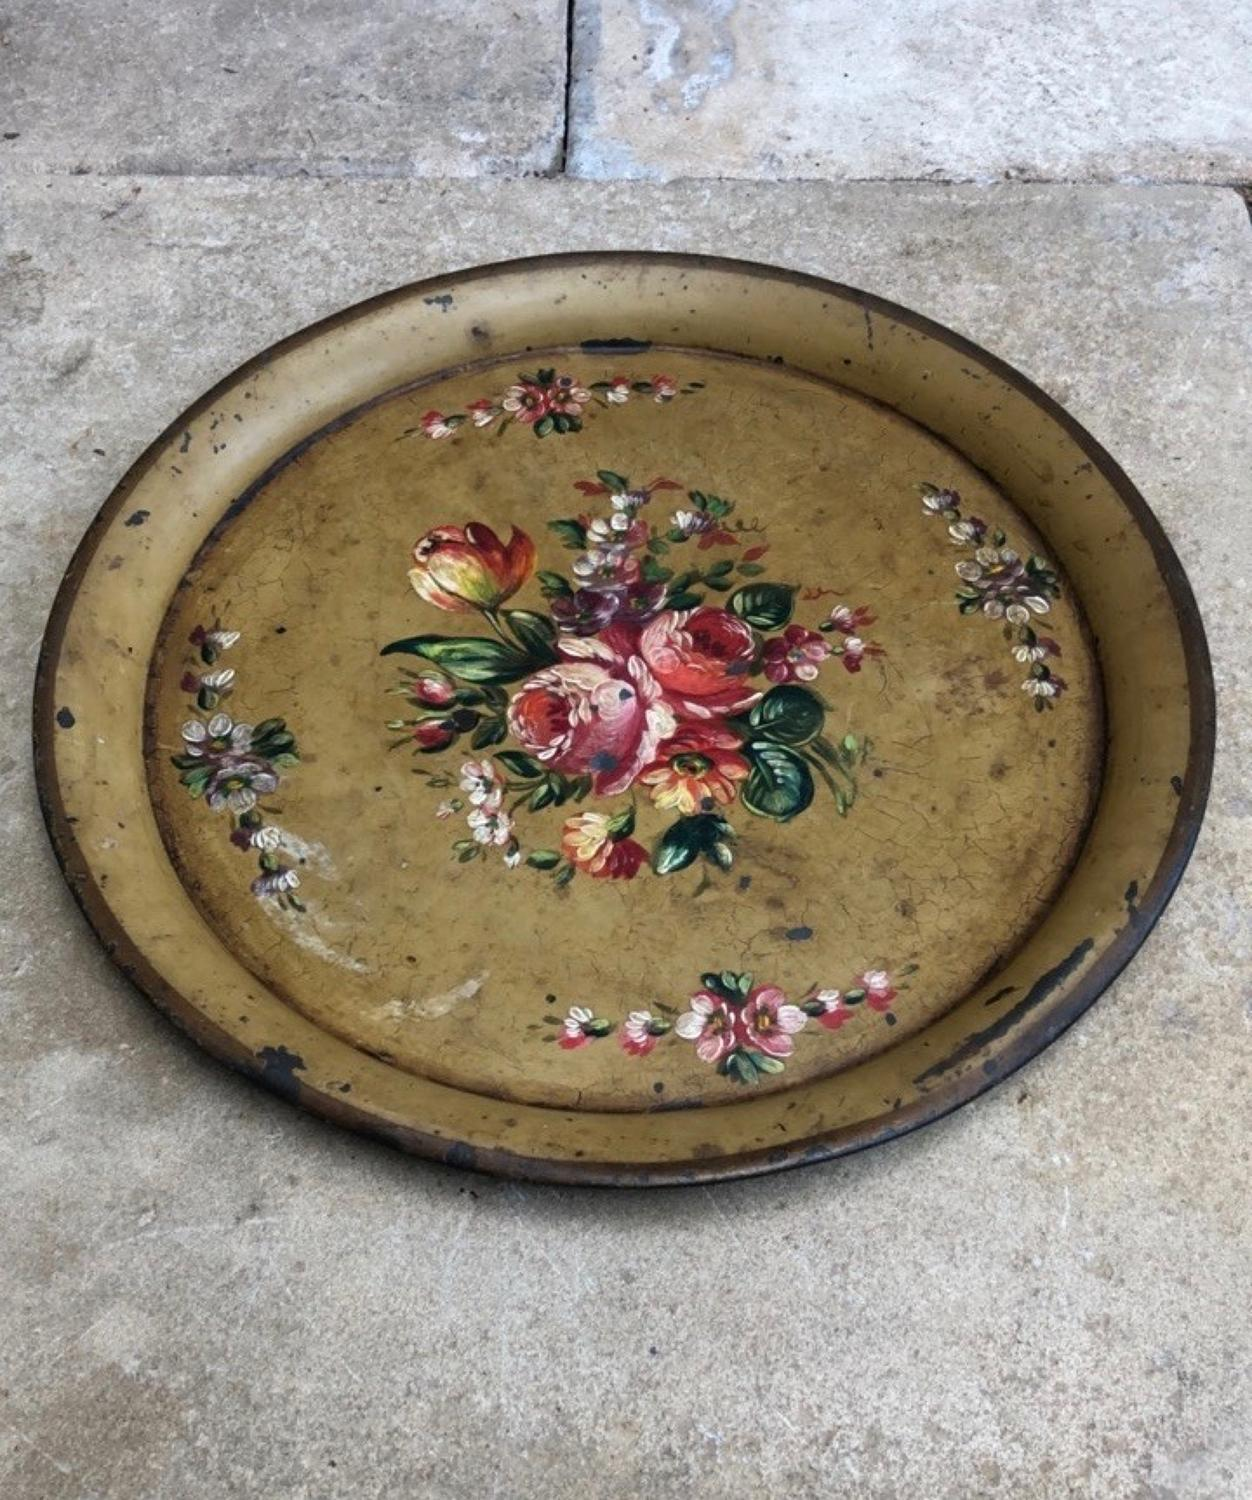 1930s Toleware Floral Tray